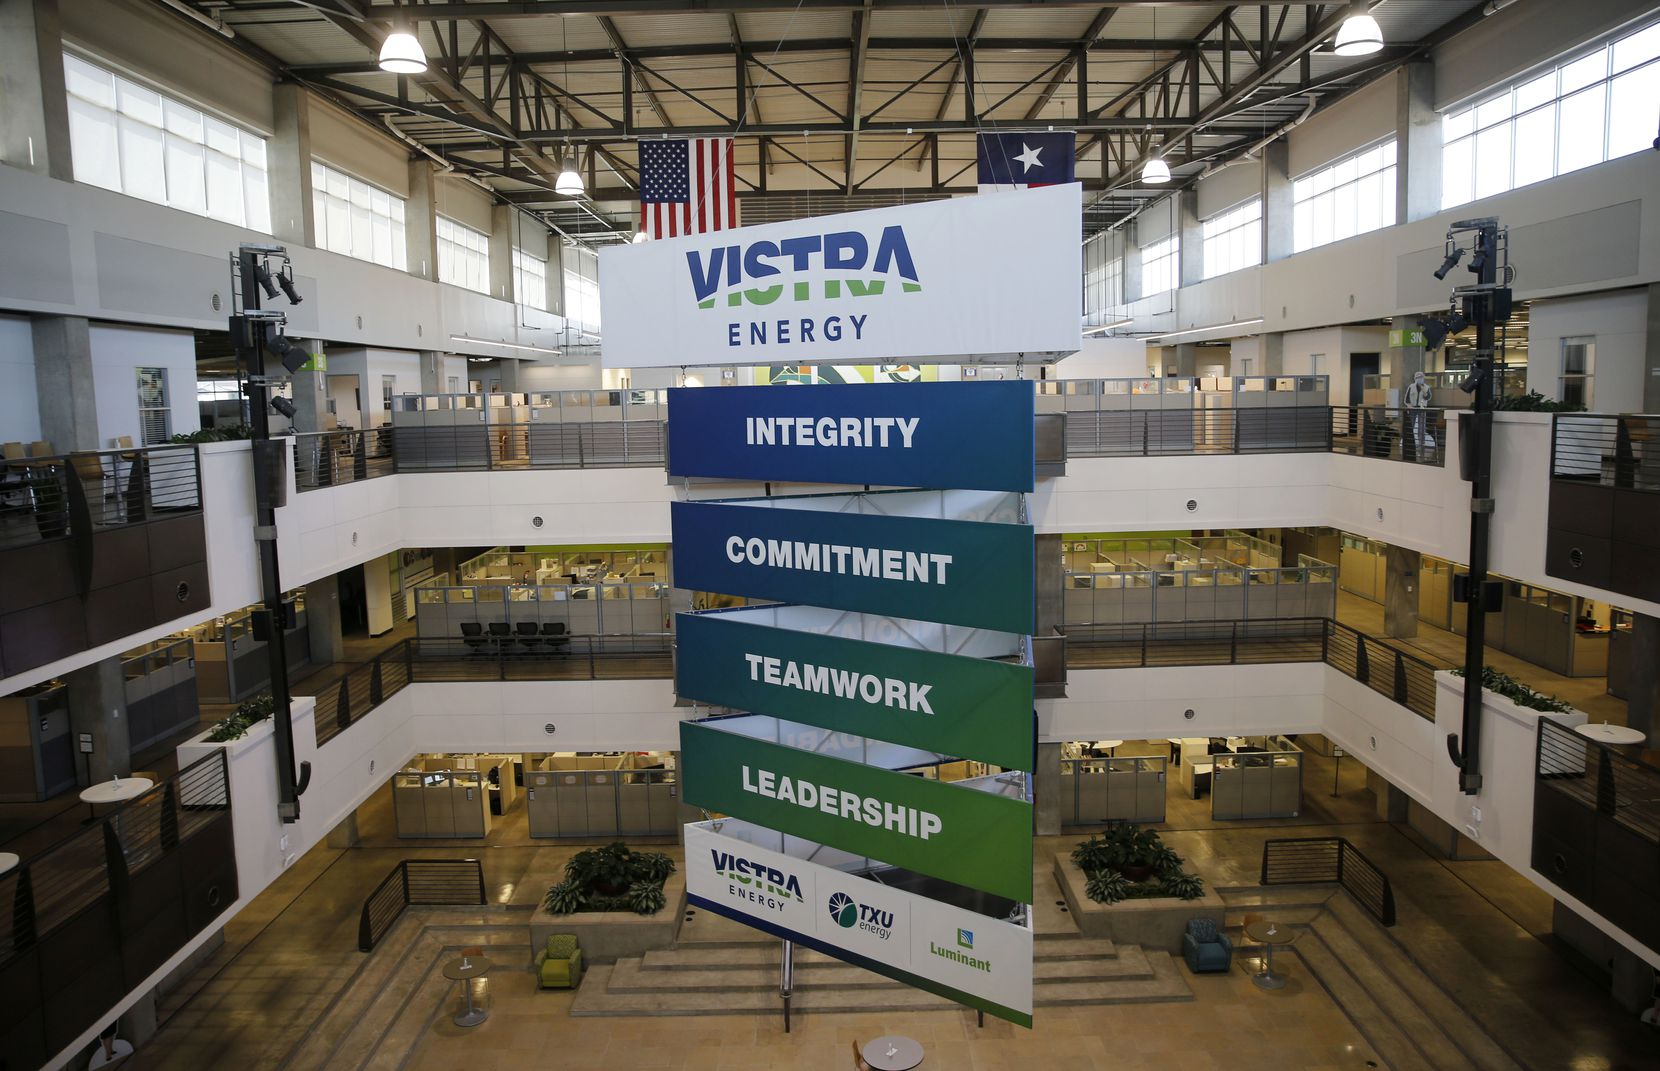 Vistra Corp. has about 5,400 employees, and up to 40% can work remotely. Others must be on-site at over 50 power plants in Texas, Illinois, Ohio and several other states.